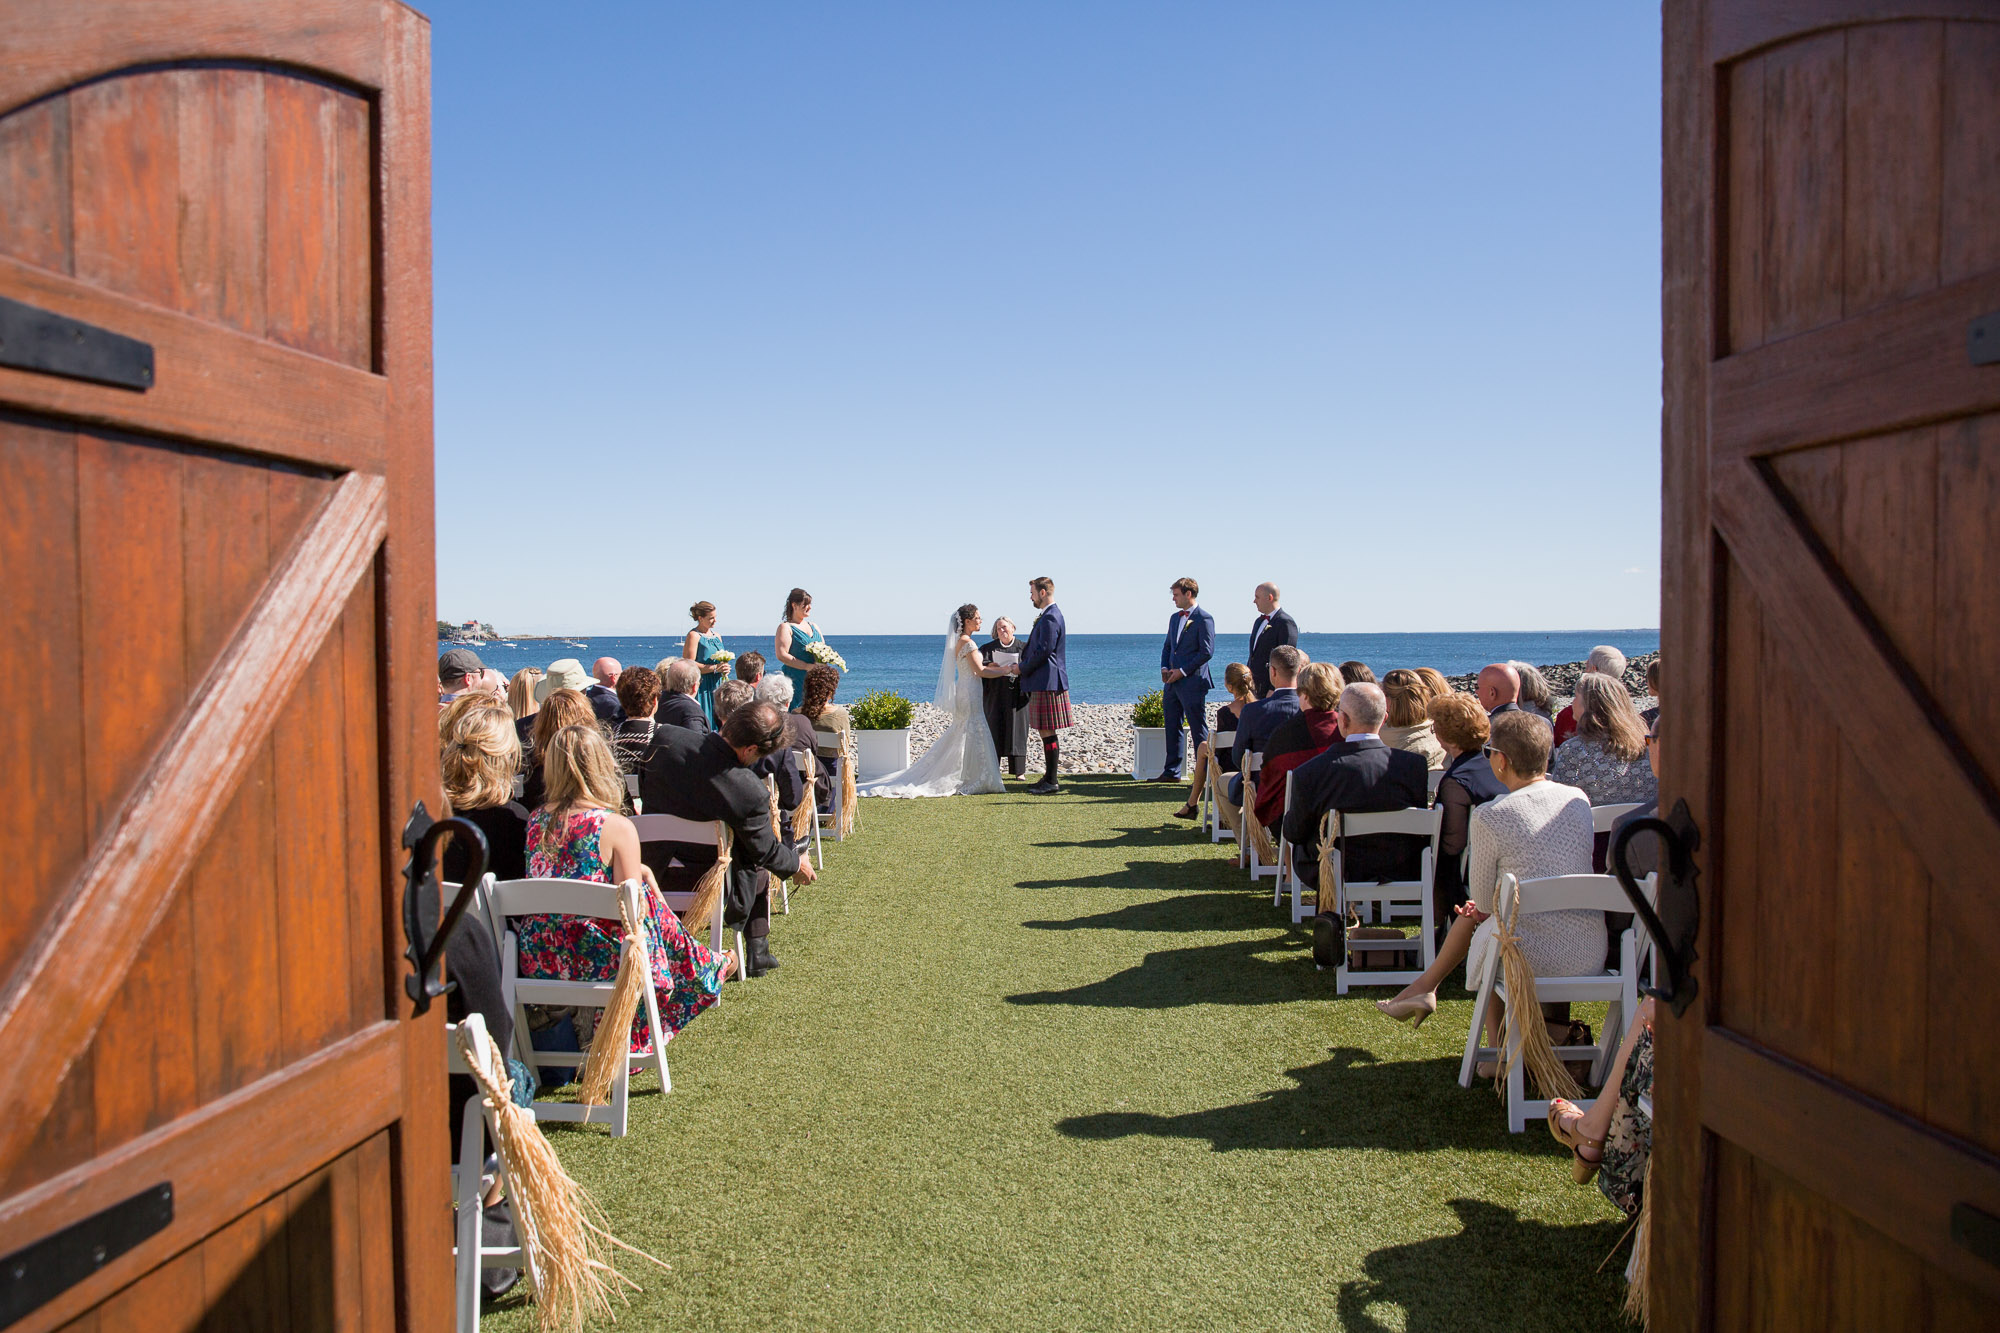 boston-wedding-photographer-26-north-studios-beach-stone-terrace-wooden-doors.jpg